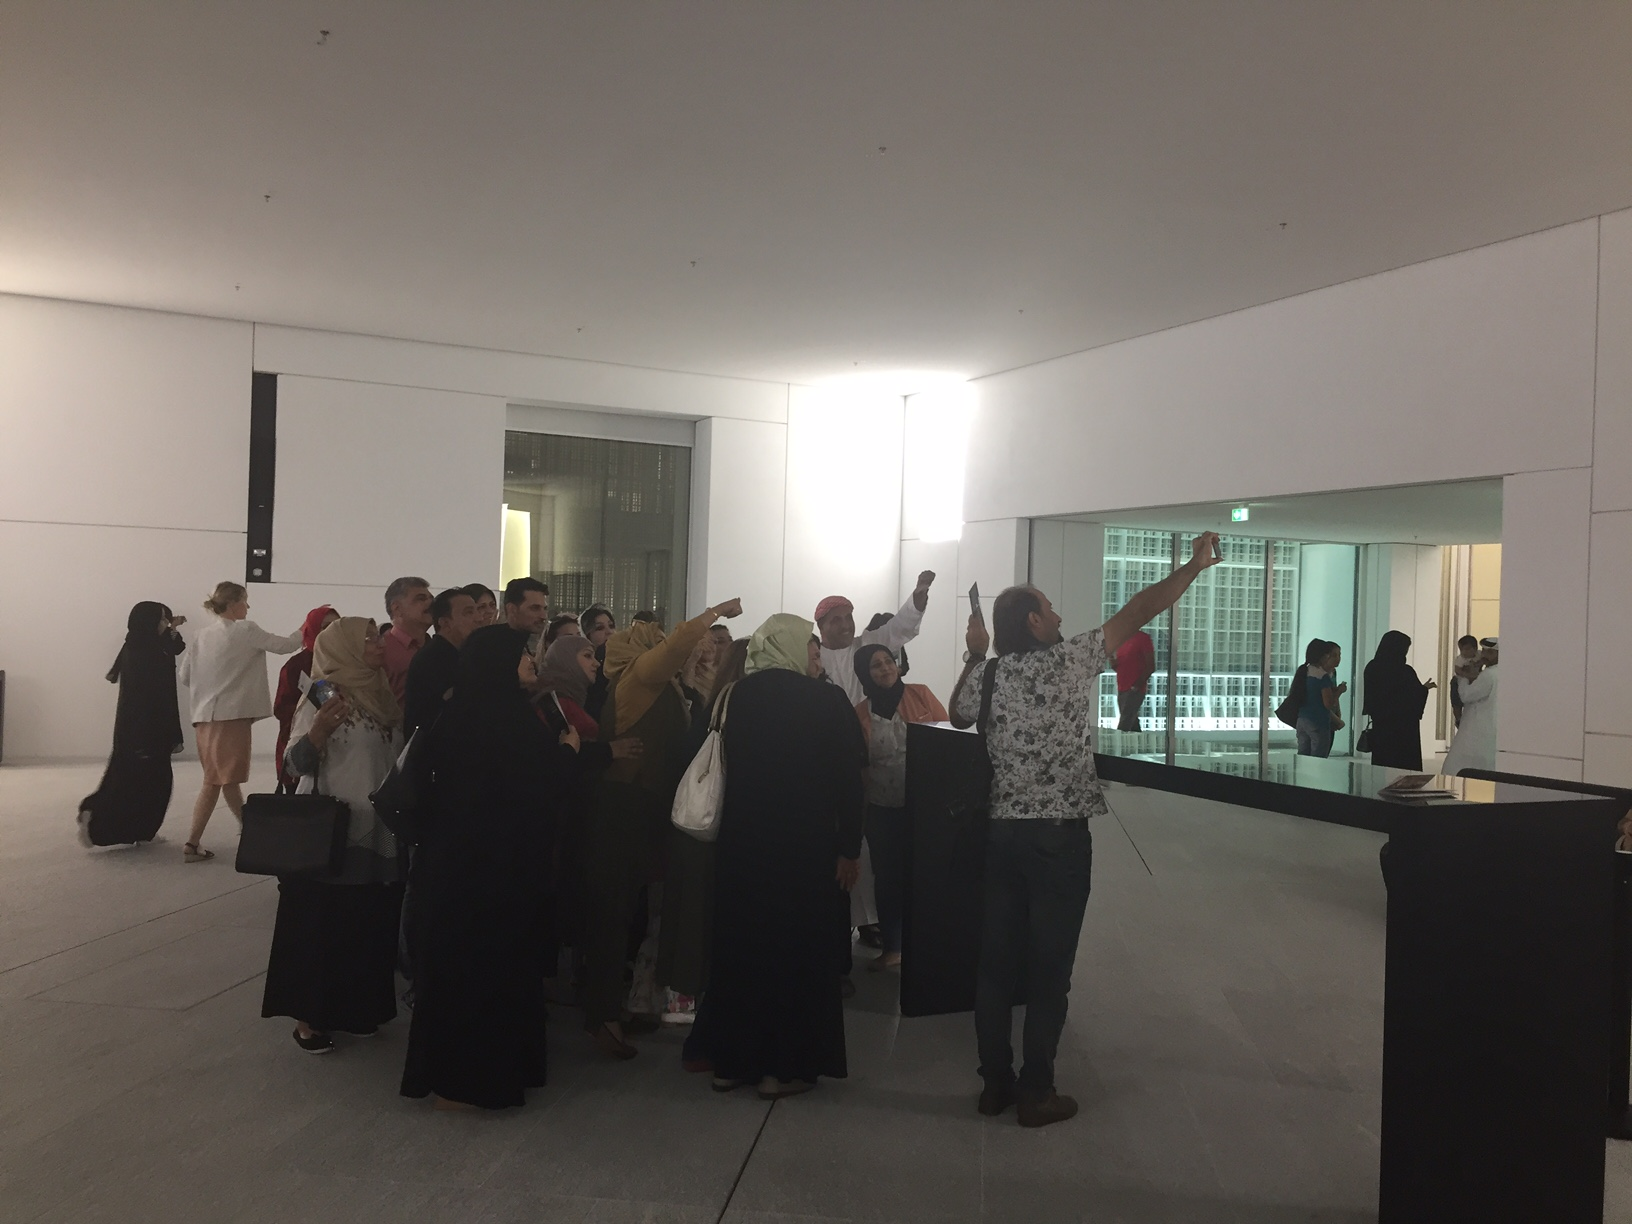 5.  Watching this group take a giggly selfie (no stick) in the lobby on 12 November 2017.